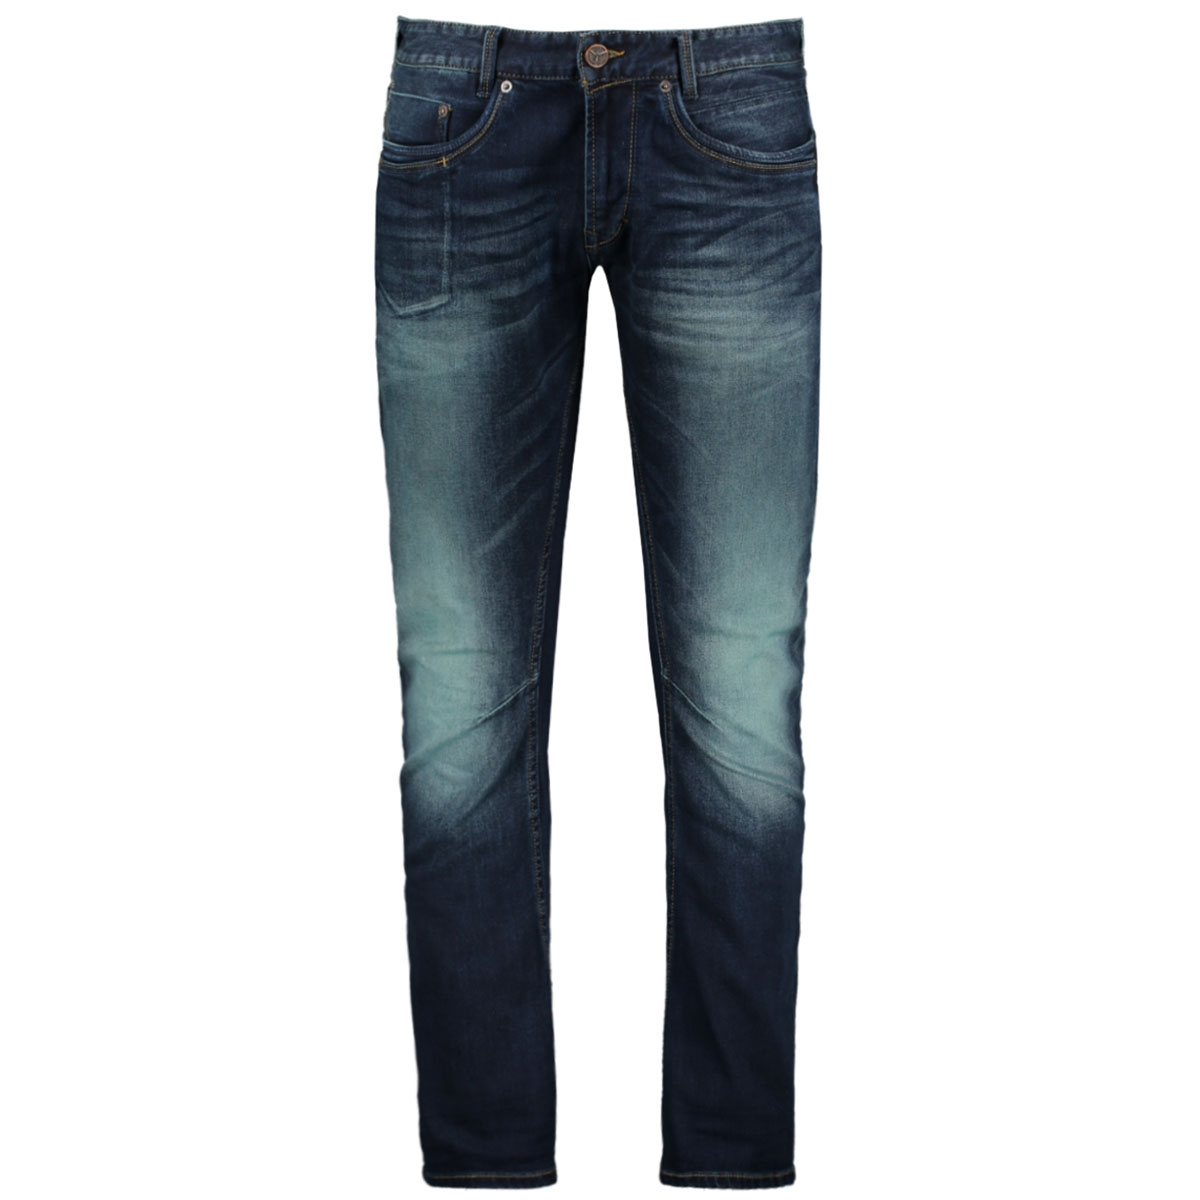 skymaster ptr650 pme legend jeans tinted blue denim